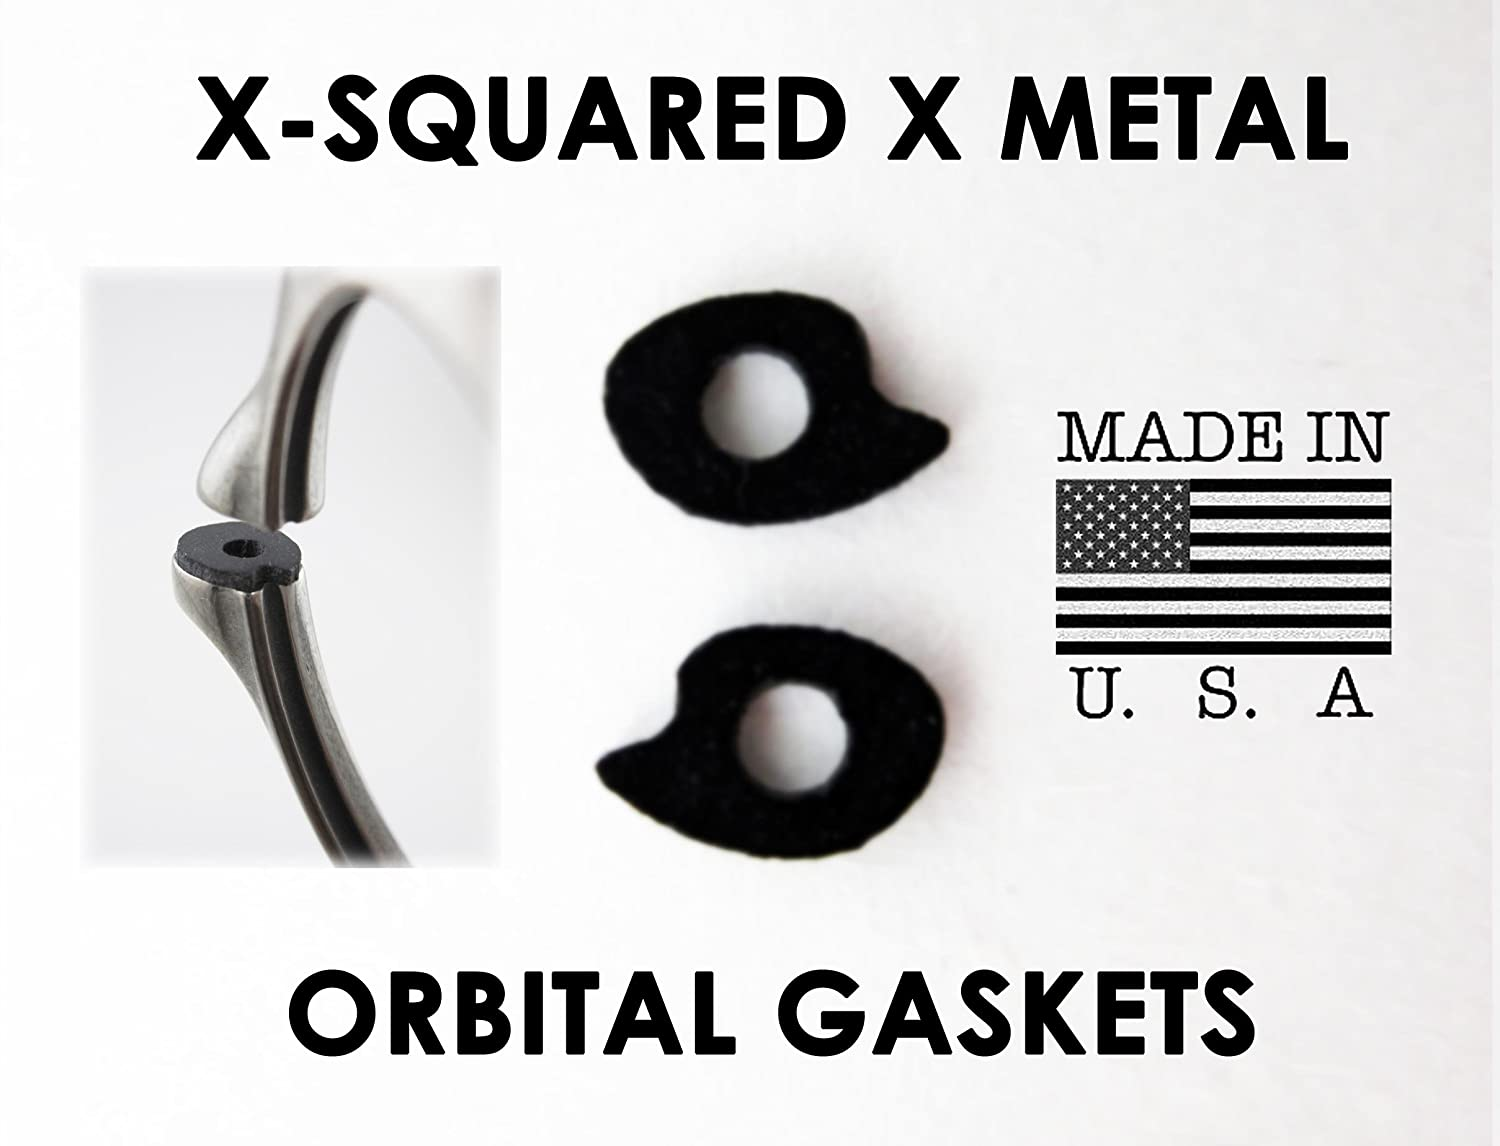 06ec7edbf50 Parts X-Squared X Metal Orbital Gaskets Replacement Rubber Lens Shocks for  Oakley X Metal Sunglasses   Everything Else